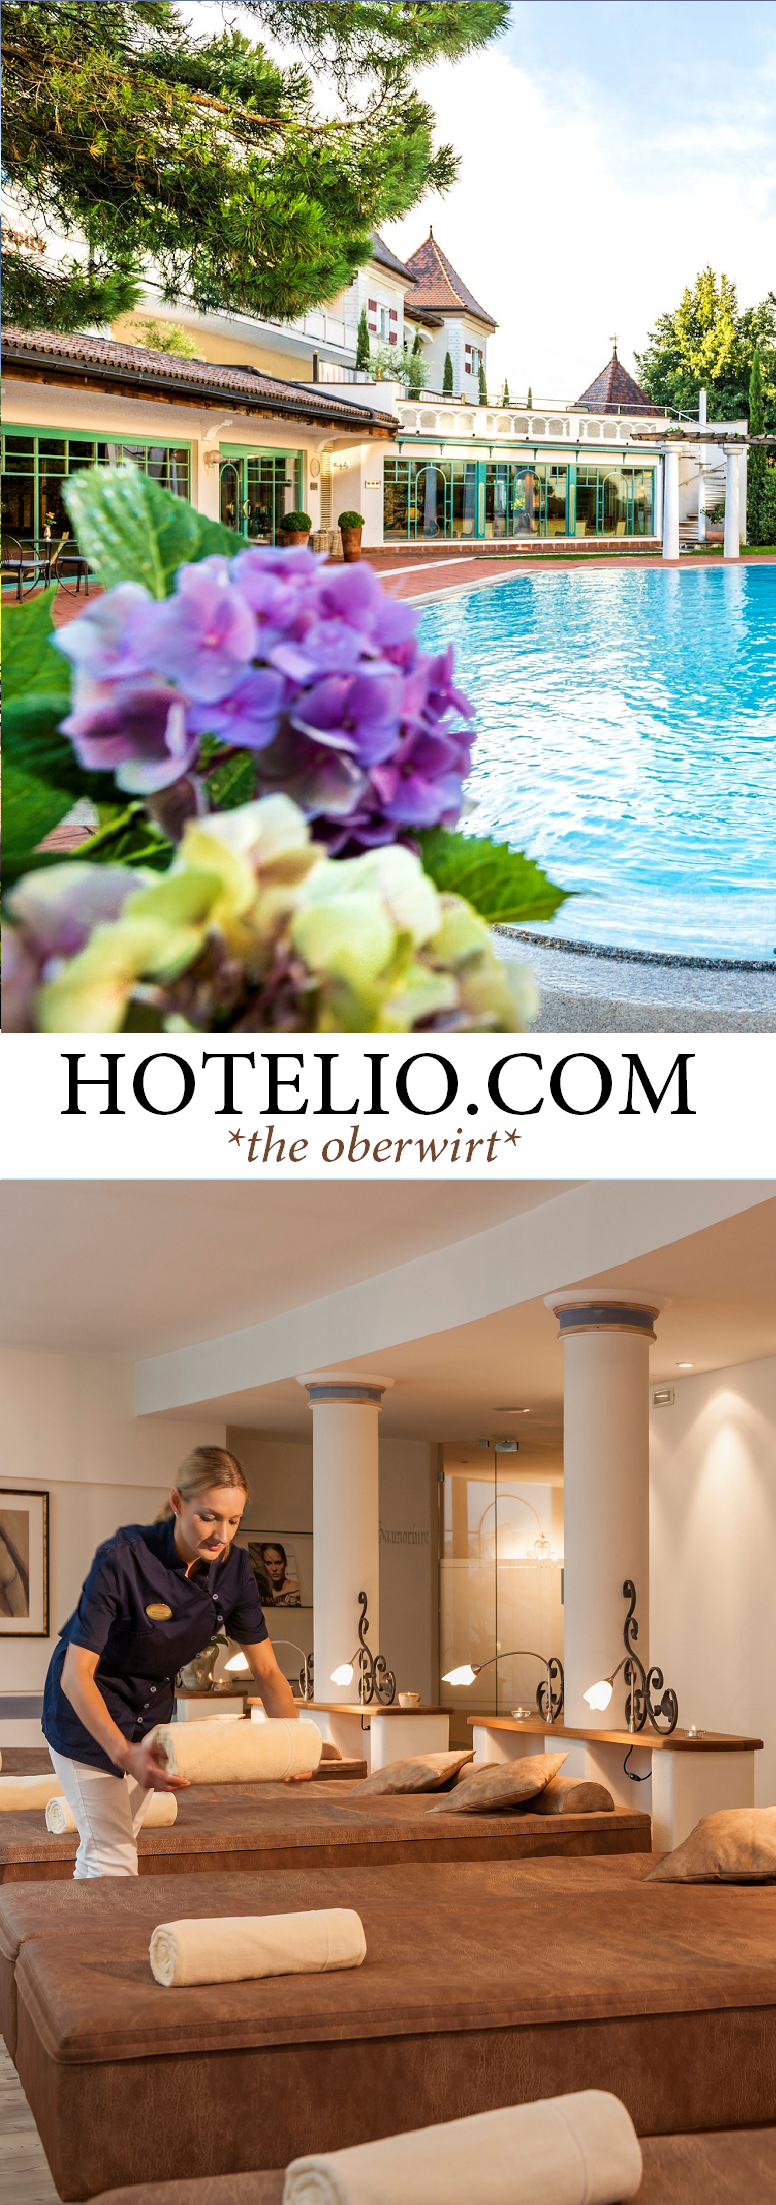 www.hotelio.com || The Oberwirt ||A little paradise located in the south side of the Alps, set in the middle of the Meran region in South Tyrol with 300 sunshine days a year. #Luxury #LuxuryTravel #LuxuryHotels #Luxury #Villas #Hotels #Trentino #SouthTyrol (Pinned by #Casalio - www.casalio.com) Our travel blog www.casaliotravel.com